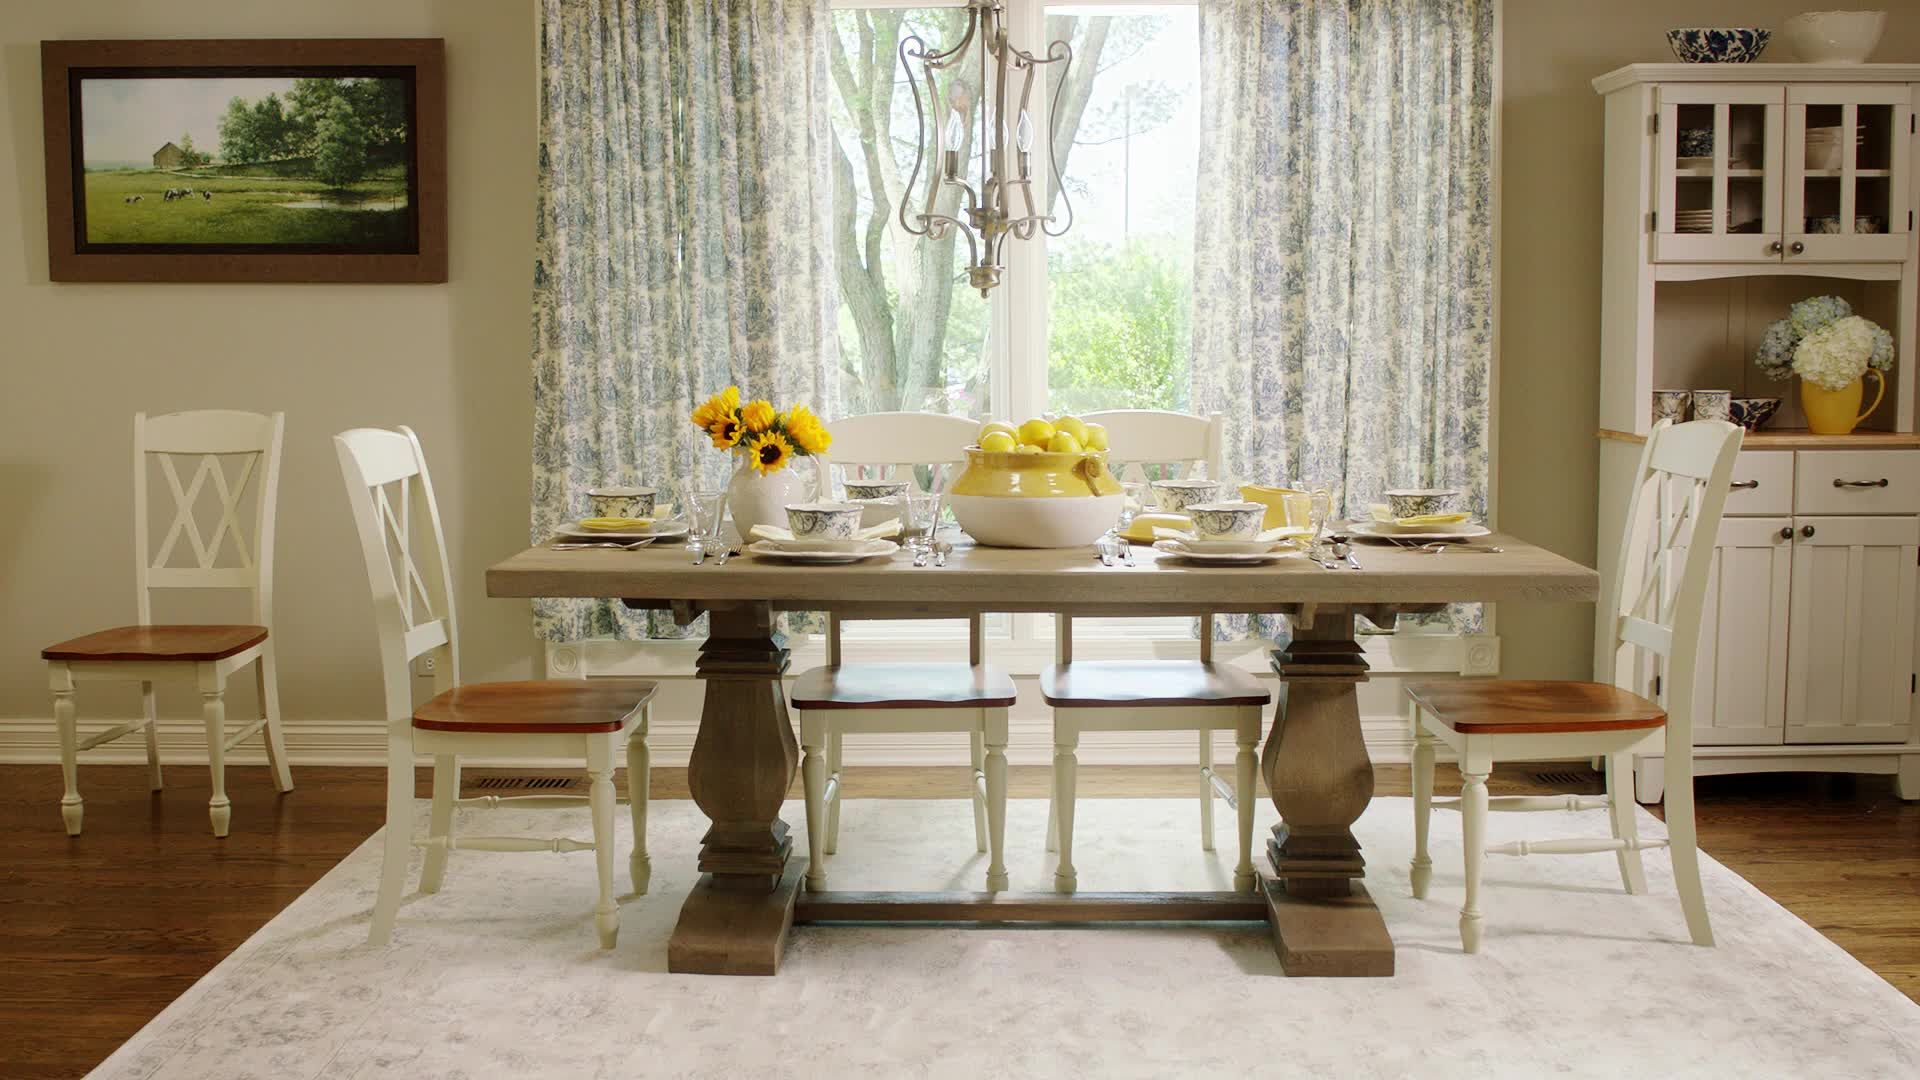 How to Create the Ultimate Farmhouse Dining Room, Whatever Your Style